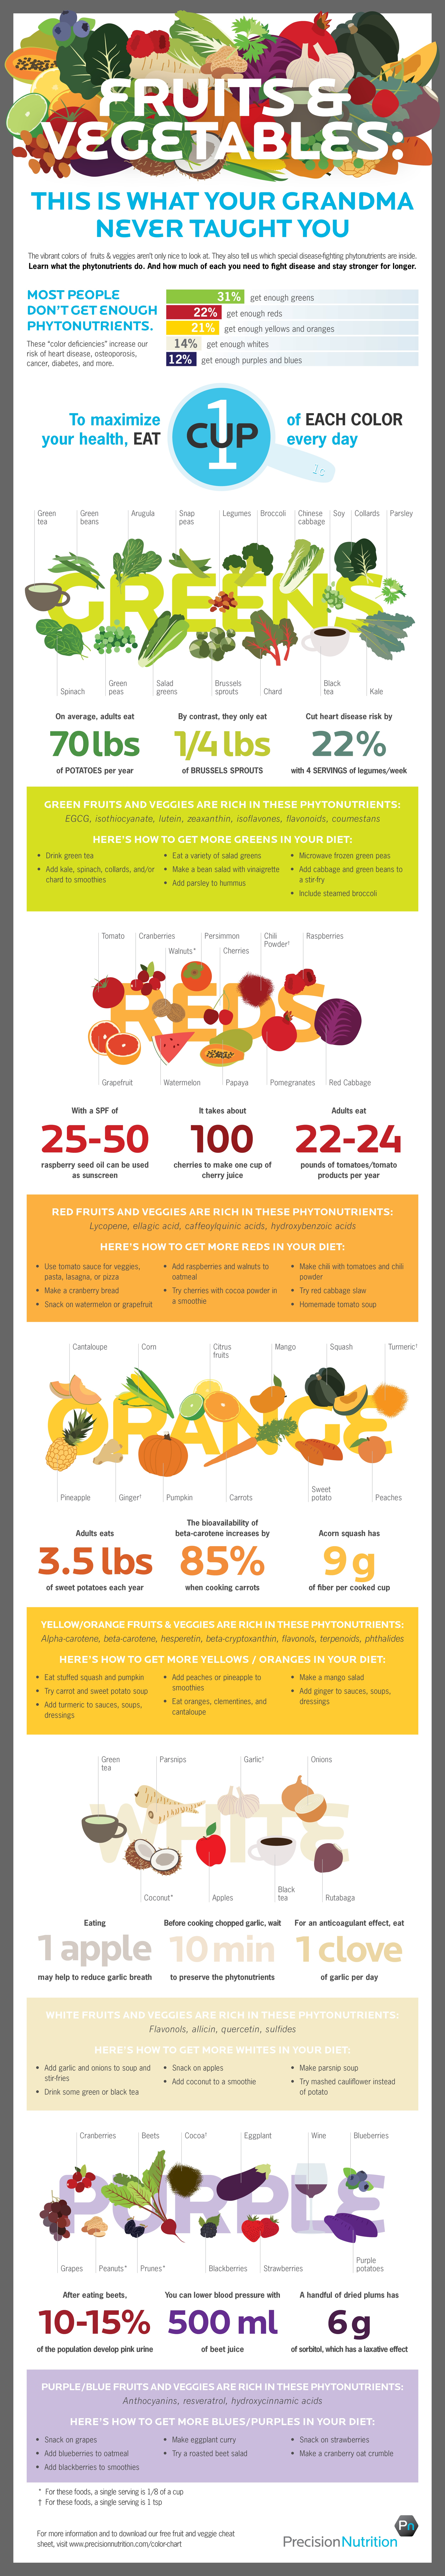 Fruit-and-Vegetable-Infographic